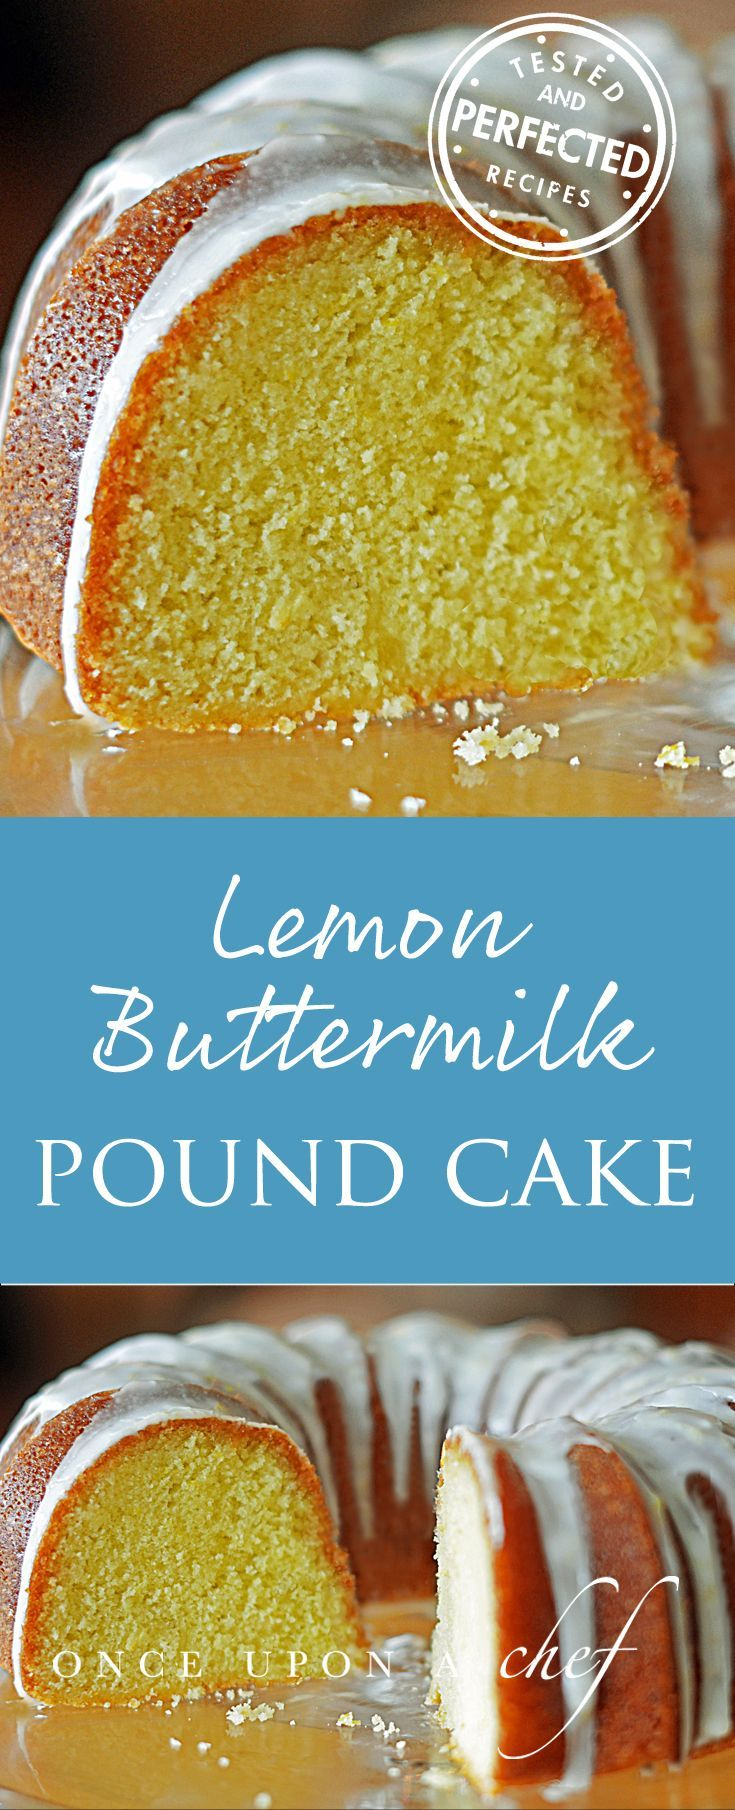 Lemon Pound Cake Recipe Lemon Buttermilk Pound Cake Buttermilk Pound Cake Recipes